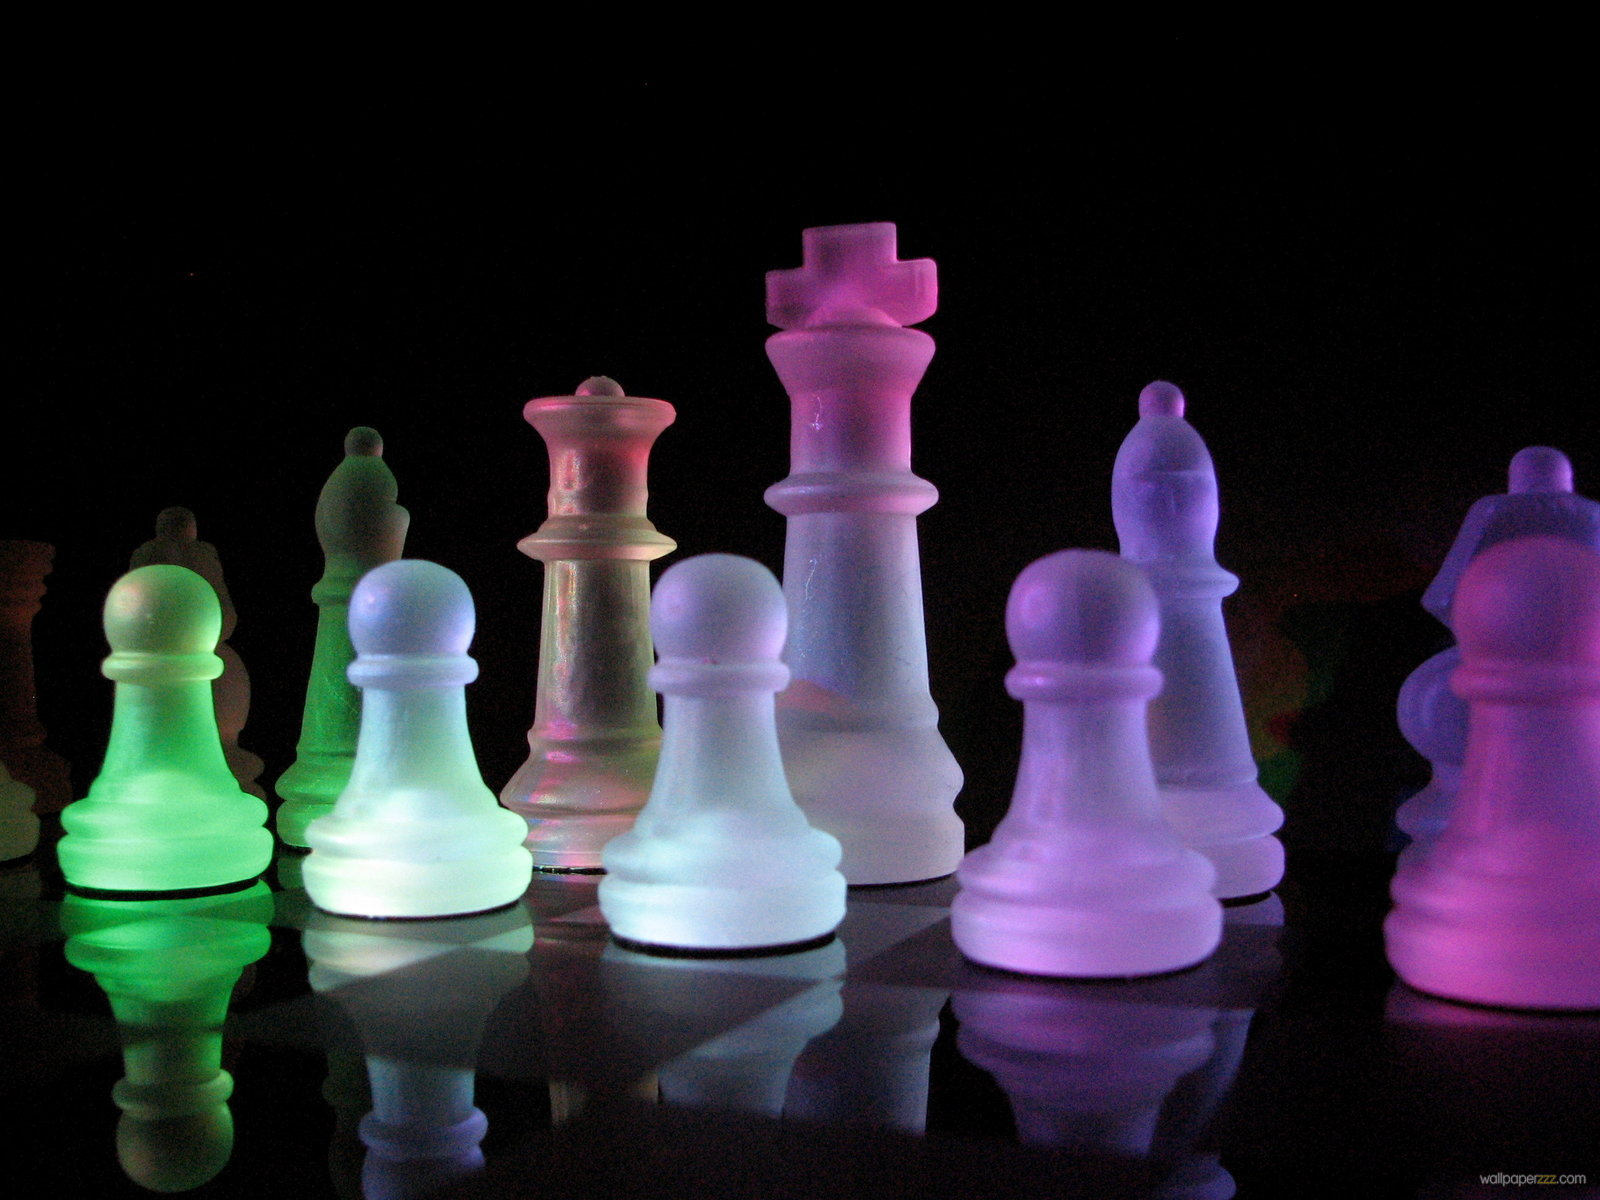 Download popular wallpapers 5 stars: 3d chess wallpapers ...  Download popula...